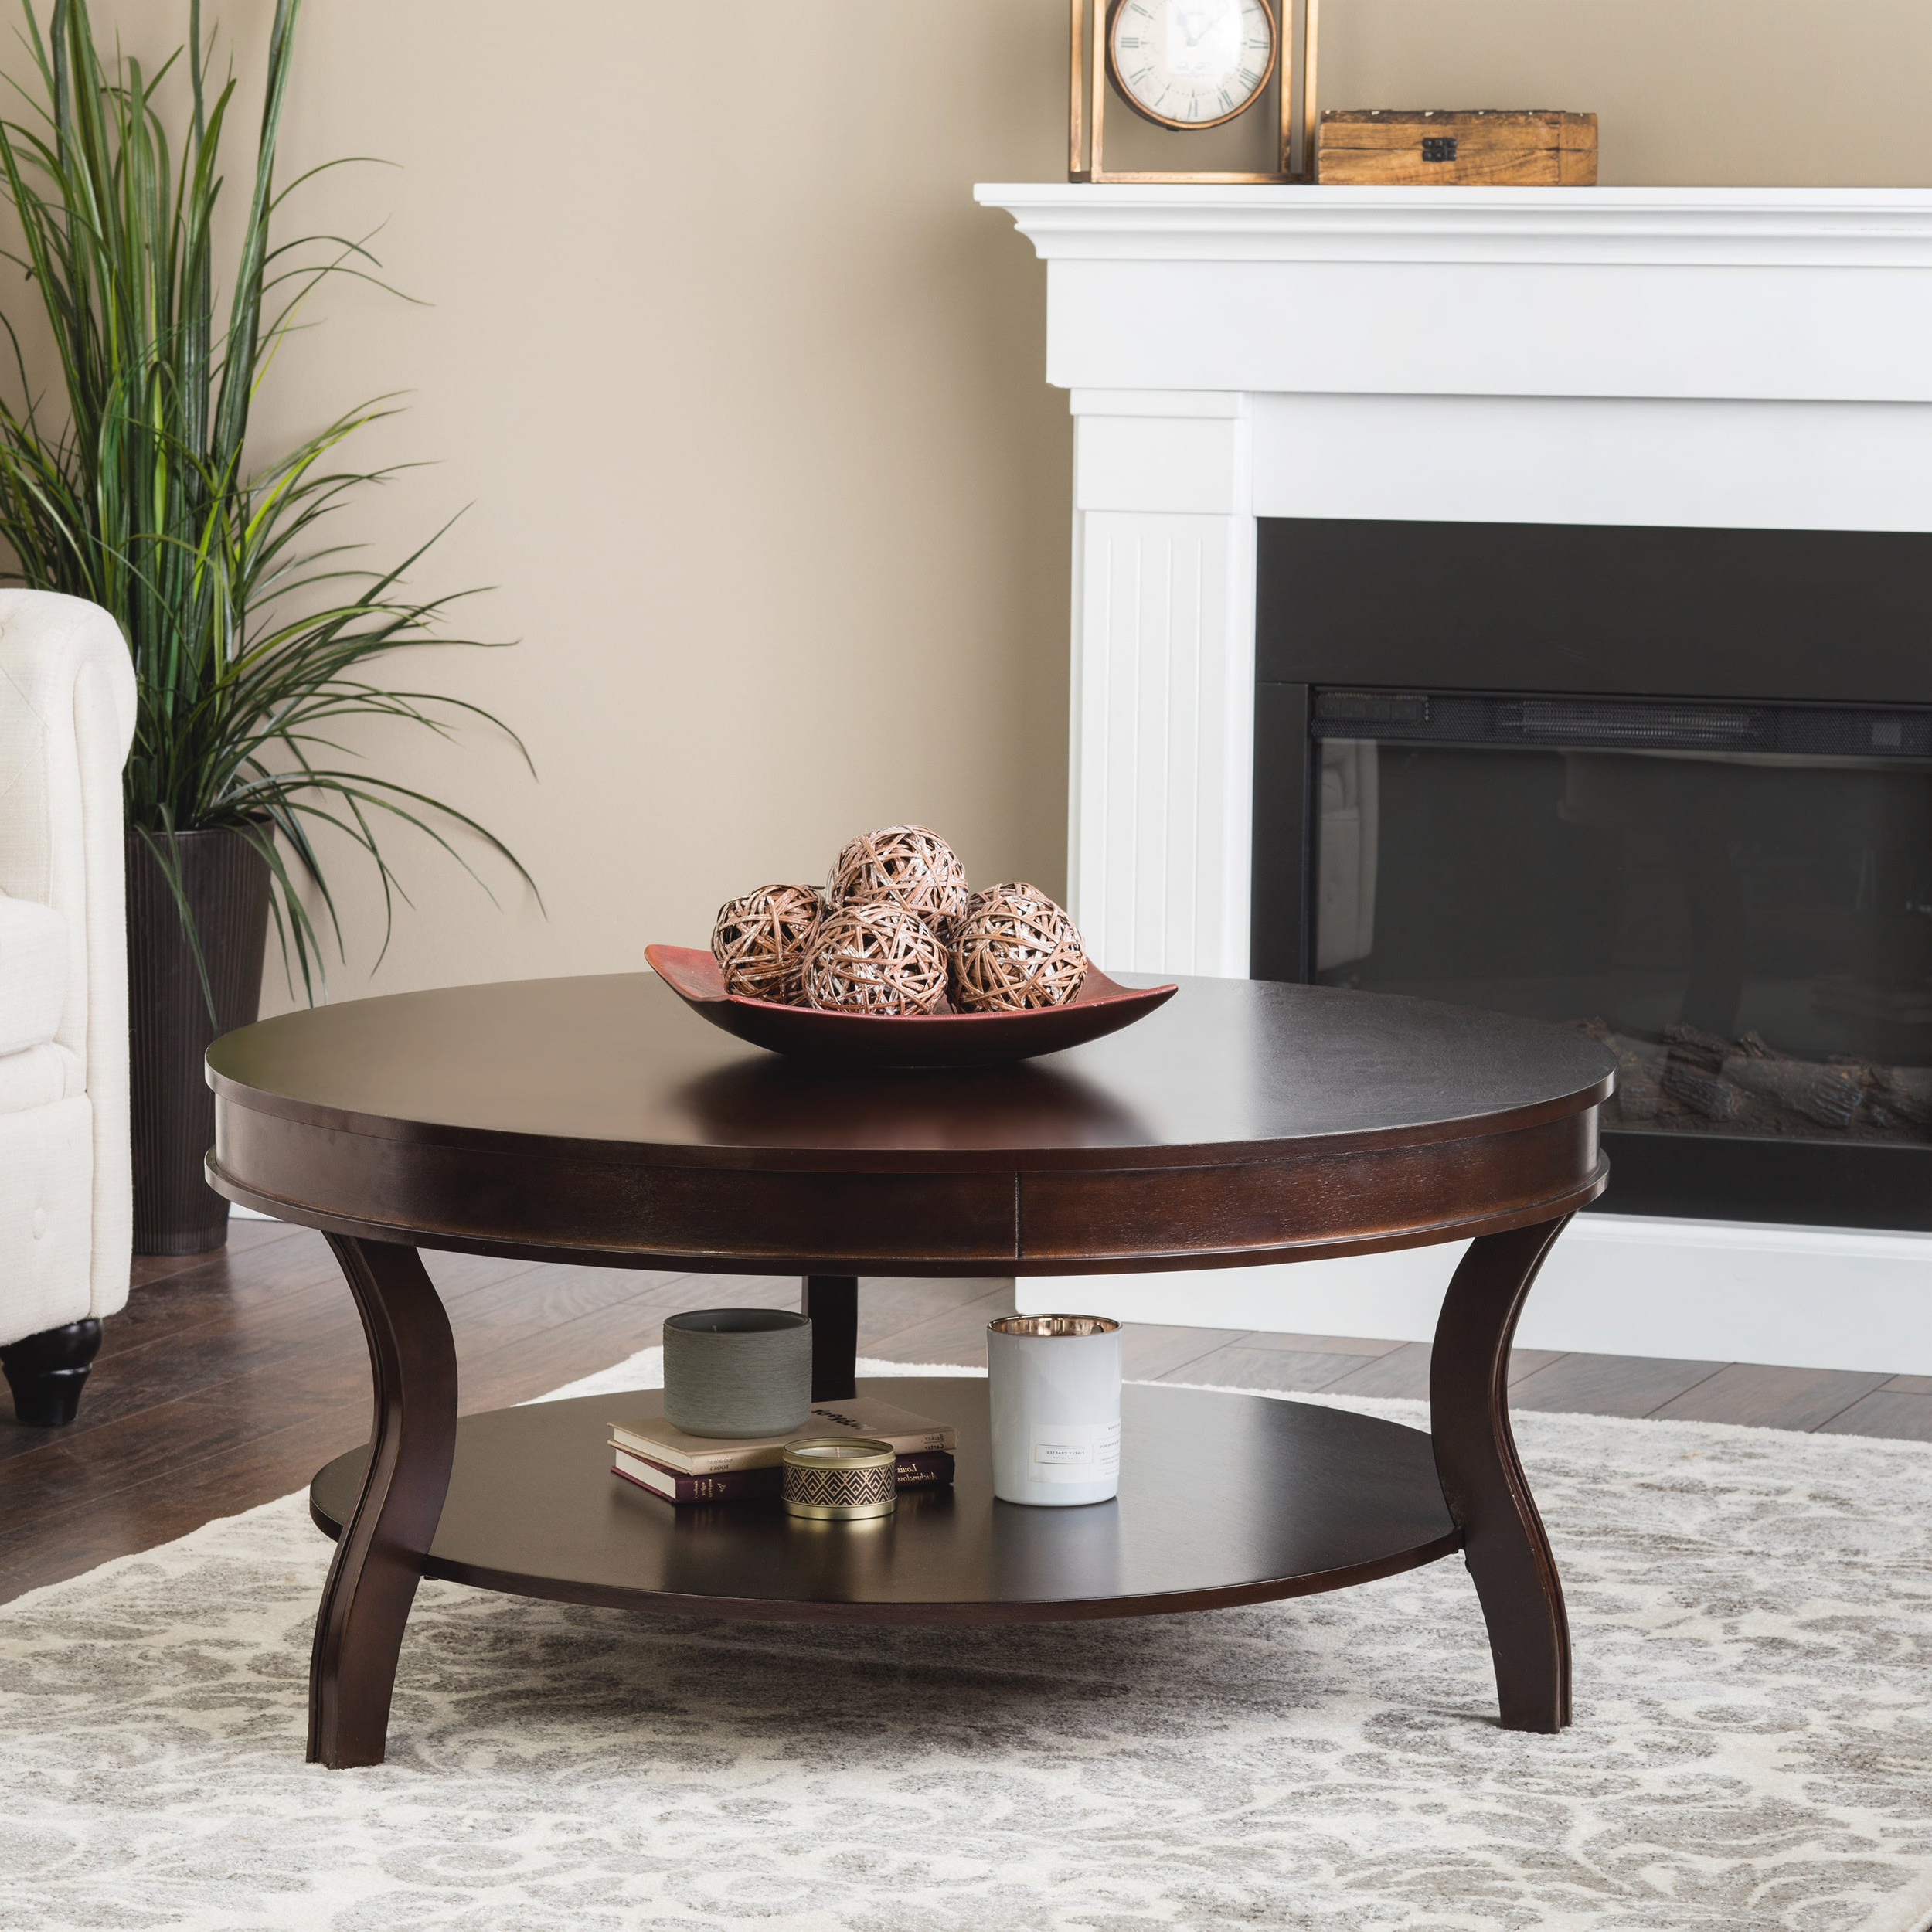 Copper Grove Wyatt Coffee Table With Preferred Copper Grove Halesia Chocolate Bronze Round Coffee Tables (View 2 of 20)